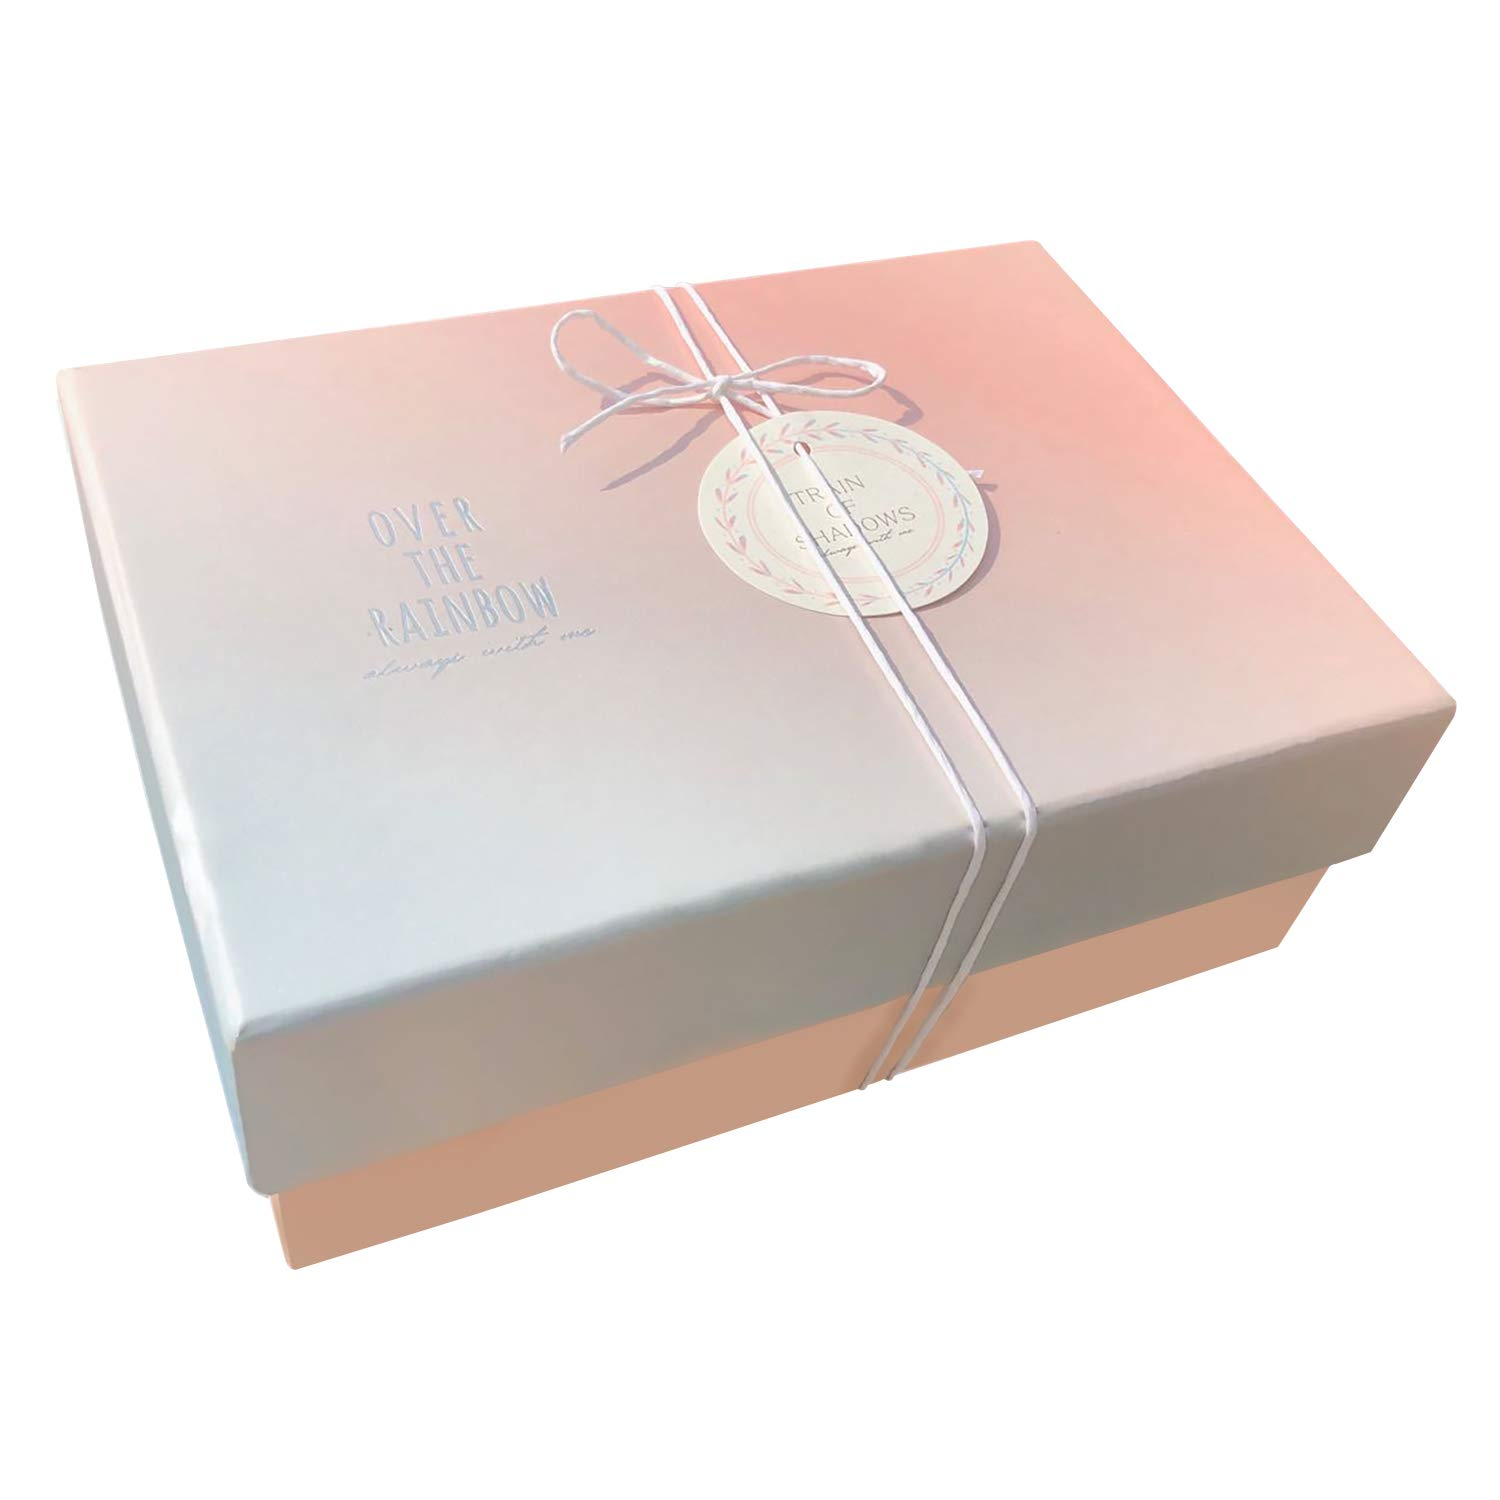 Bangtan Boys Suga Gift Boxes - Map of The Soul: Persona, Gifts Case Set for Daughter Army (SUGA, MinPD)